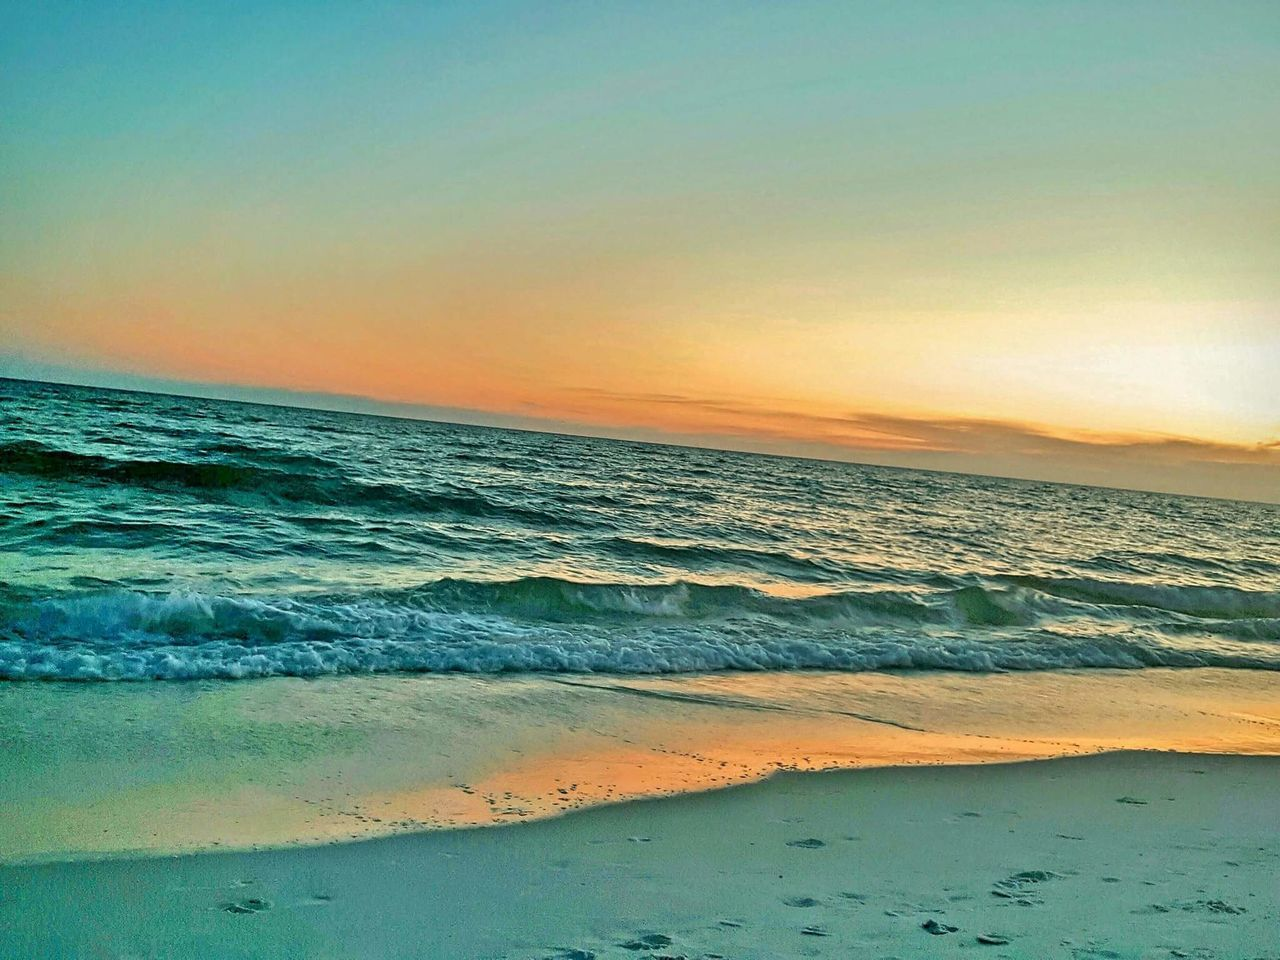 sea, sunset, beauty in nature, beach, horizon over water, scenics, water, nature, wave, tranquility, tranquil scene, no people, idyllic, sky, sand, outdoors, day